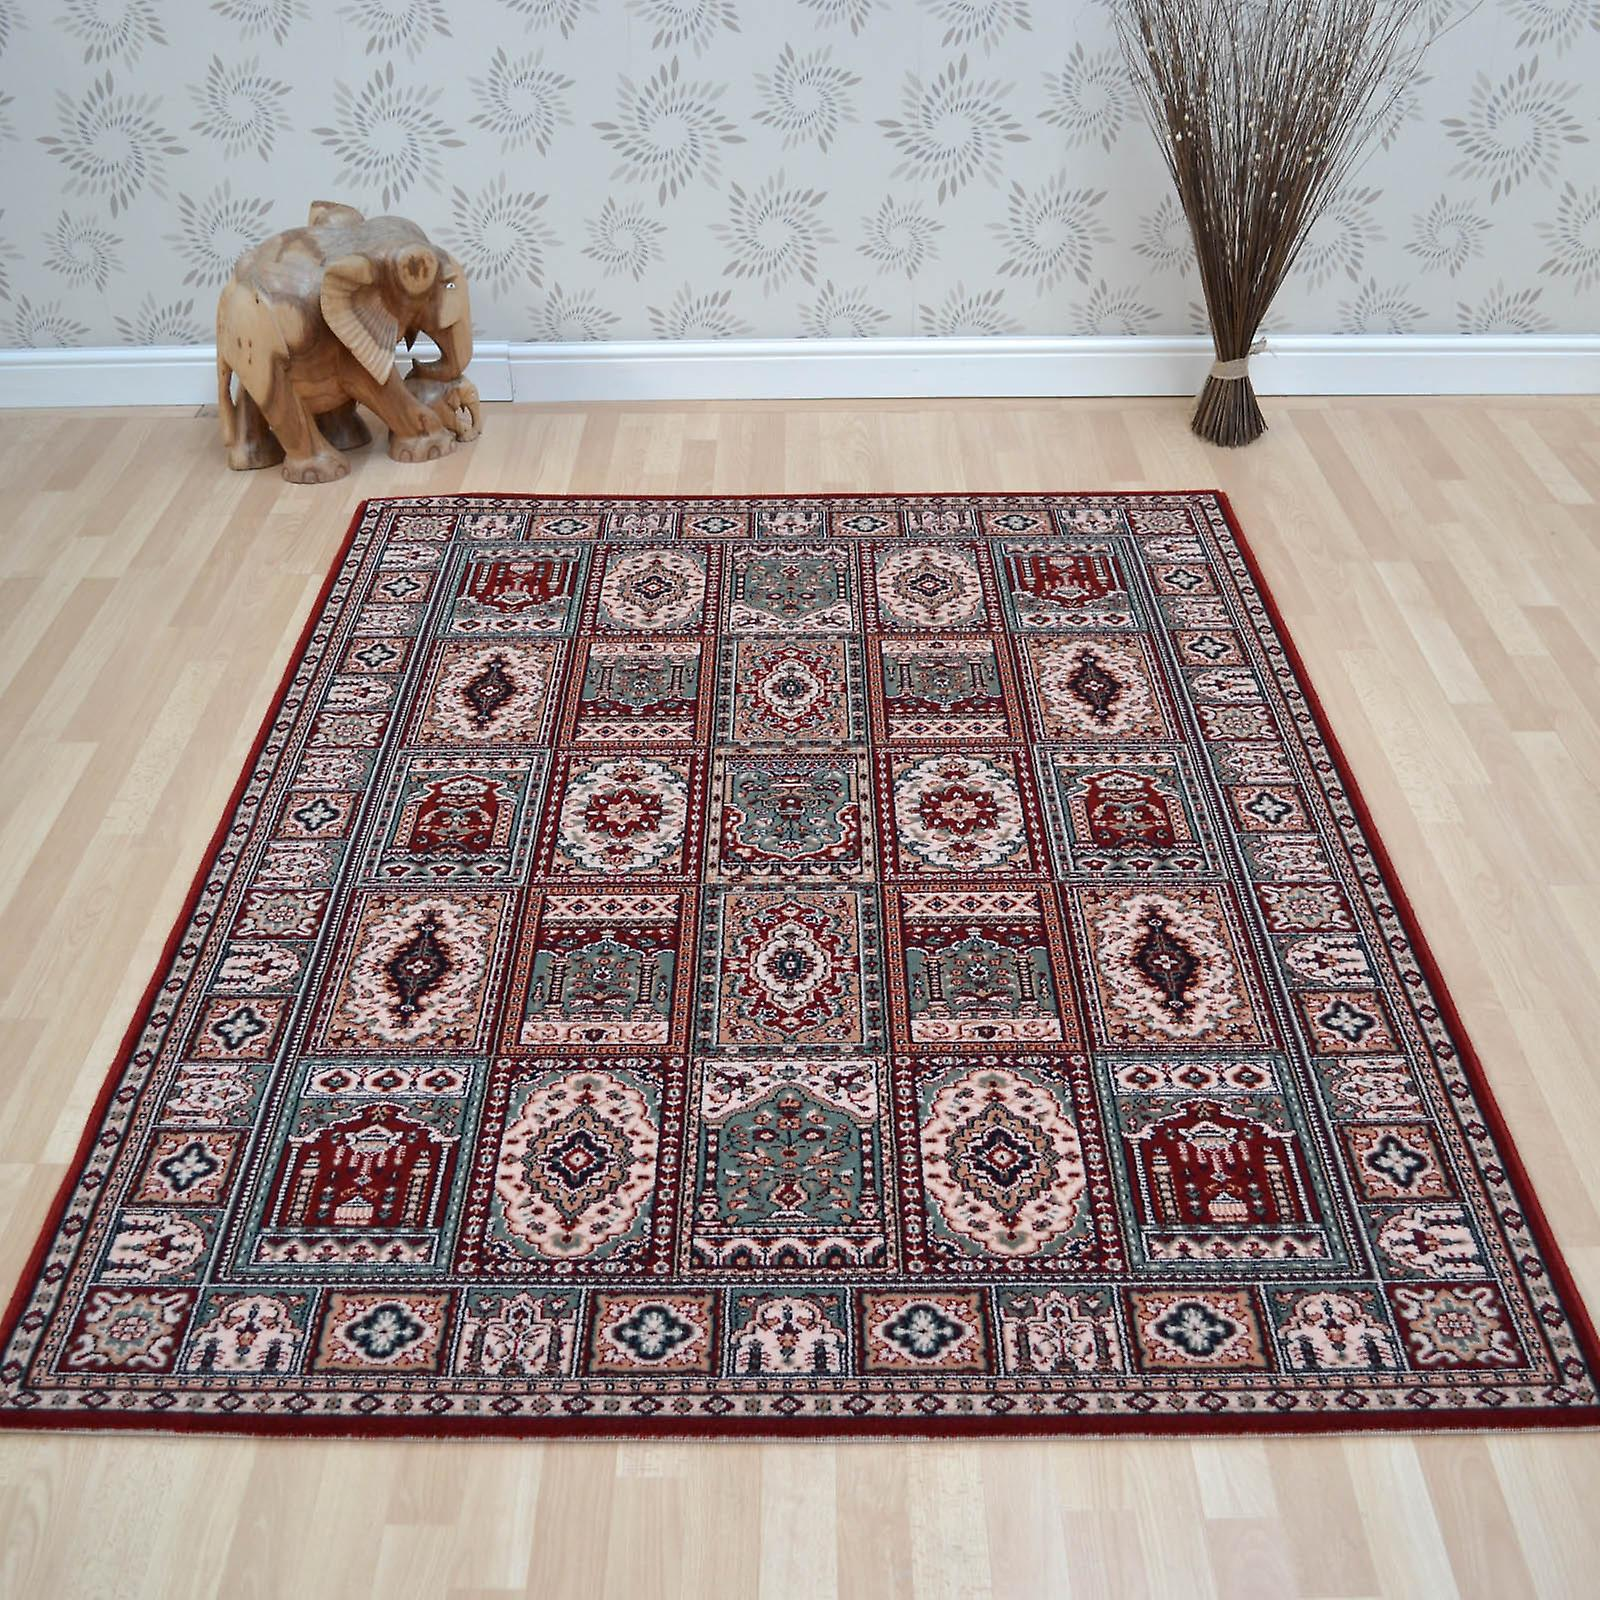 Lano Royal Rugs 1569 507 Red